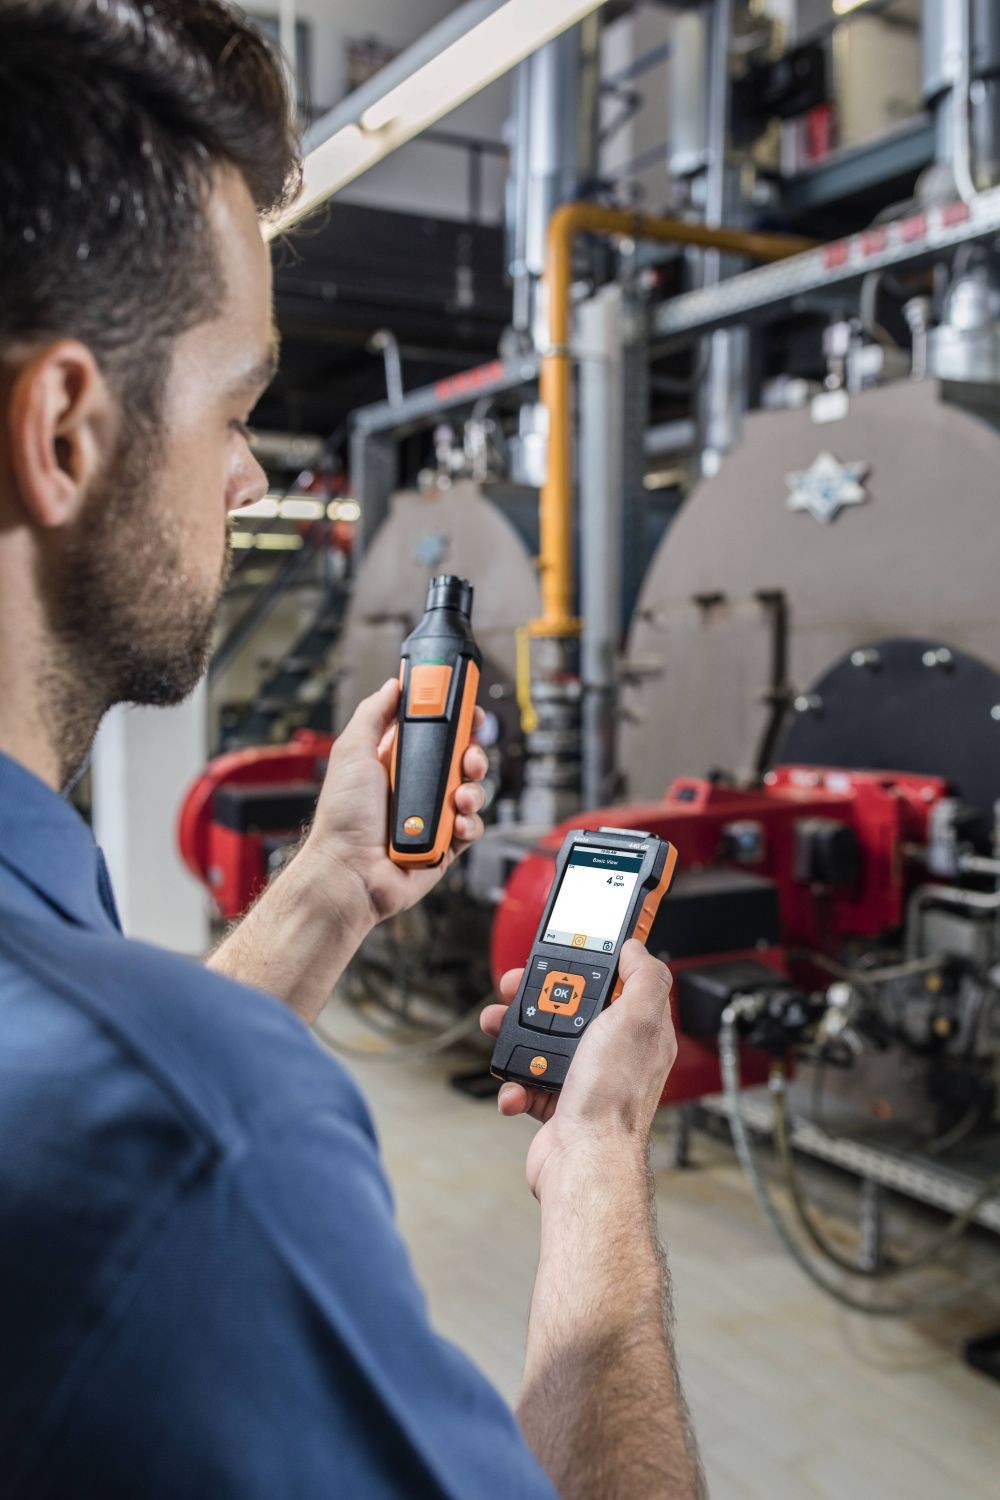 Detection of carbon monoxide boiler rooms with CO probe and testo 440